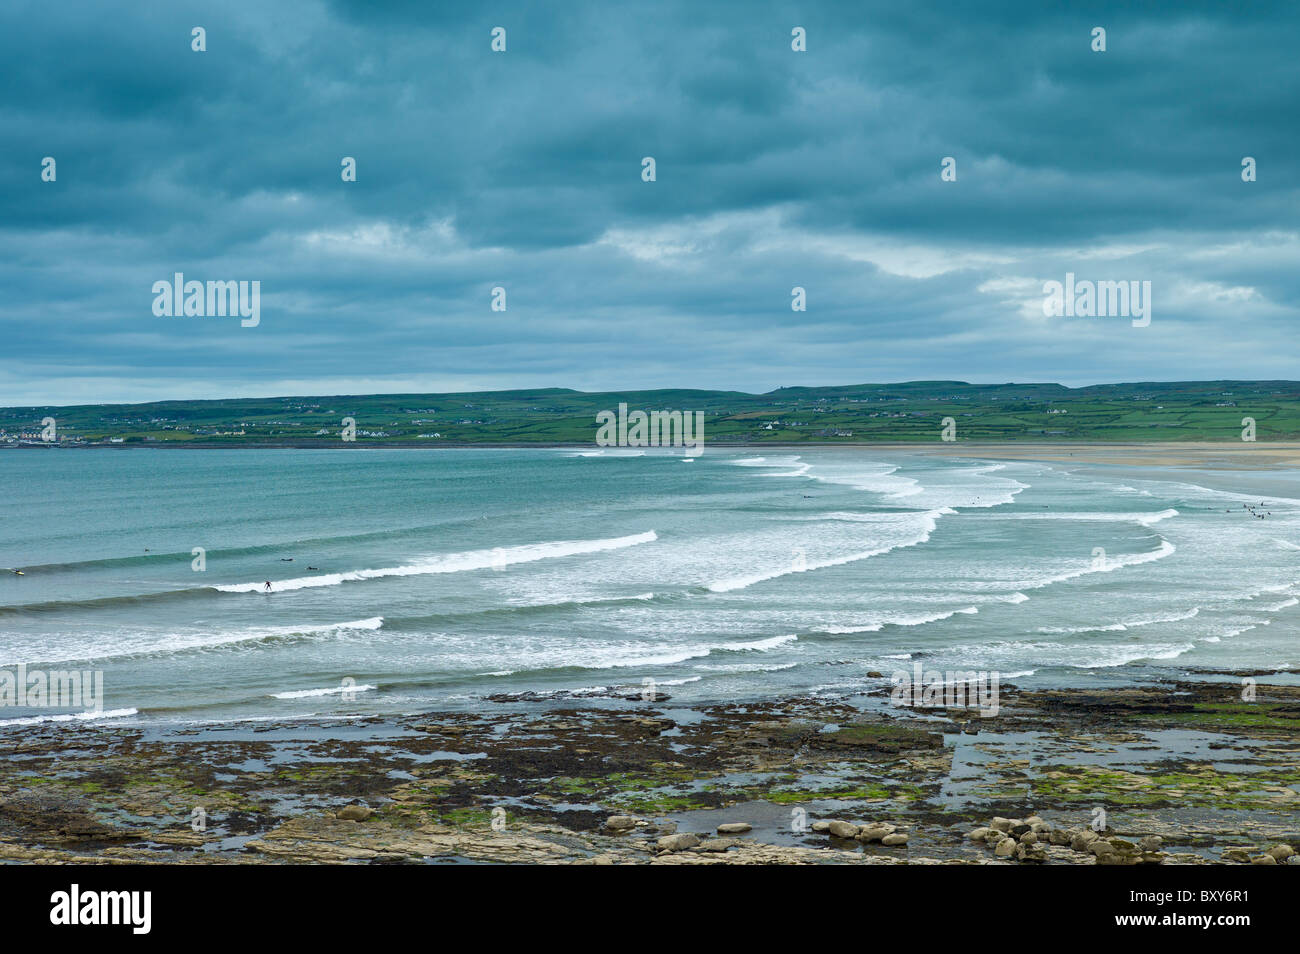 Beach and waves at Lahinch (Lehinch) famous surfing beach in County Clare, West Coast of Ireland - Stock Image